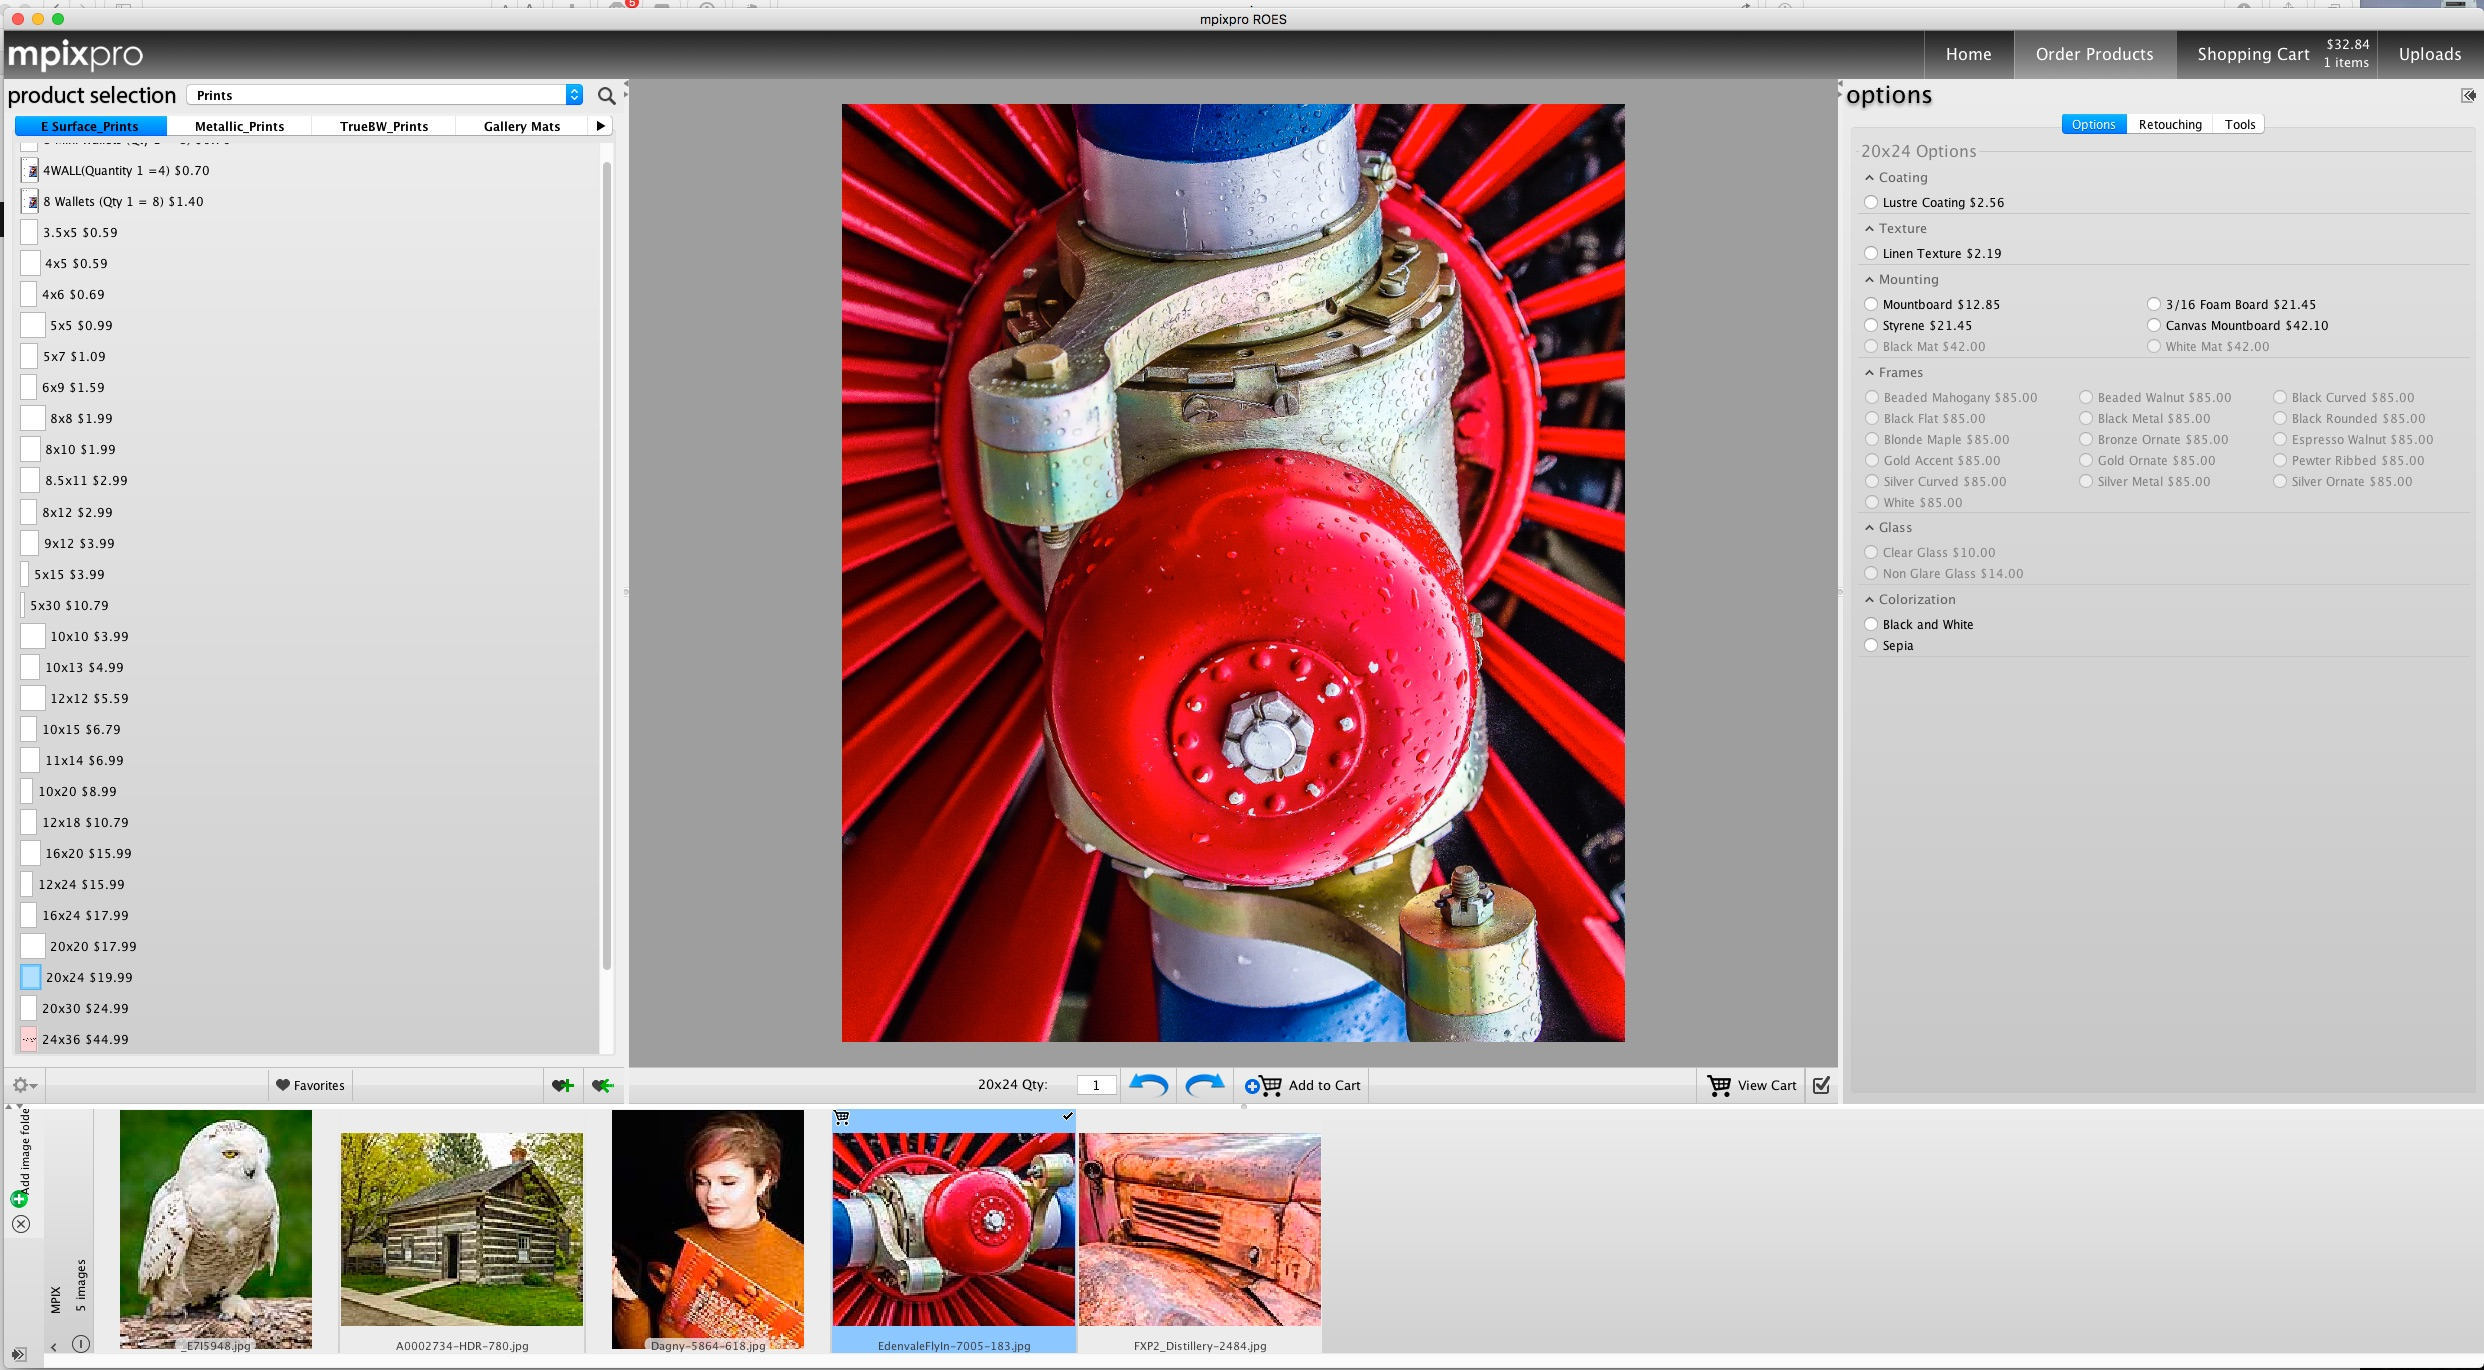 A screenshot from the ROES client for MPIX Pro